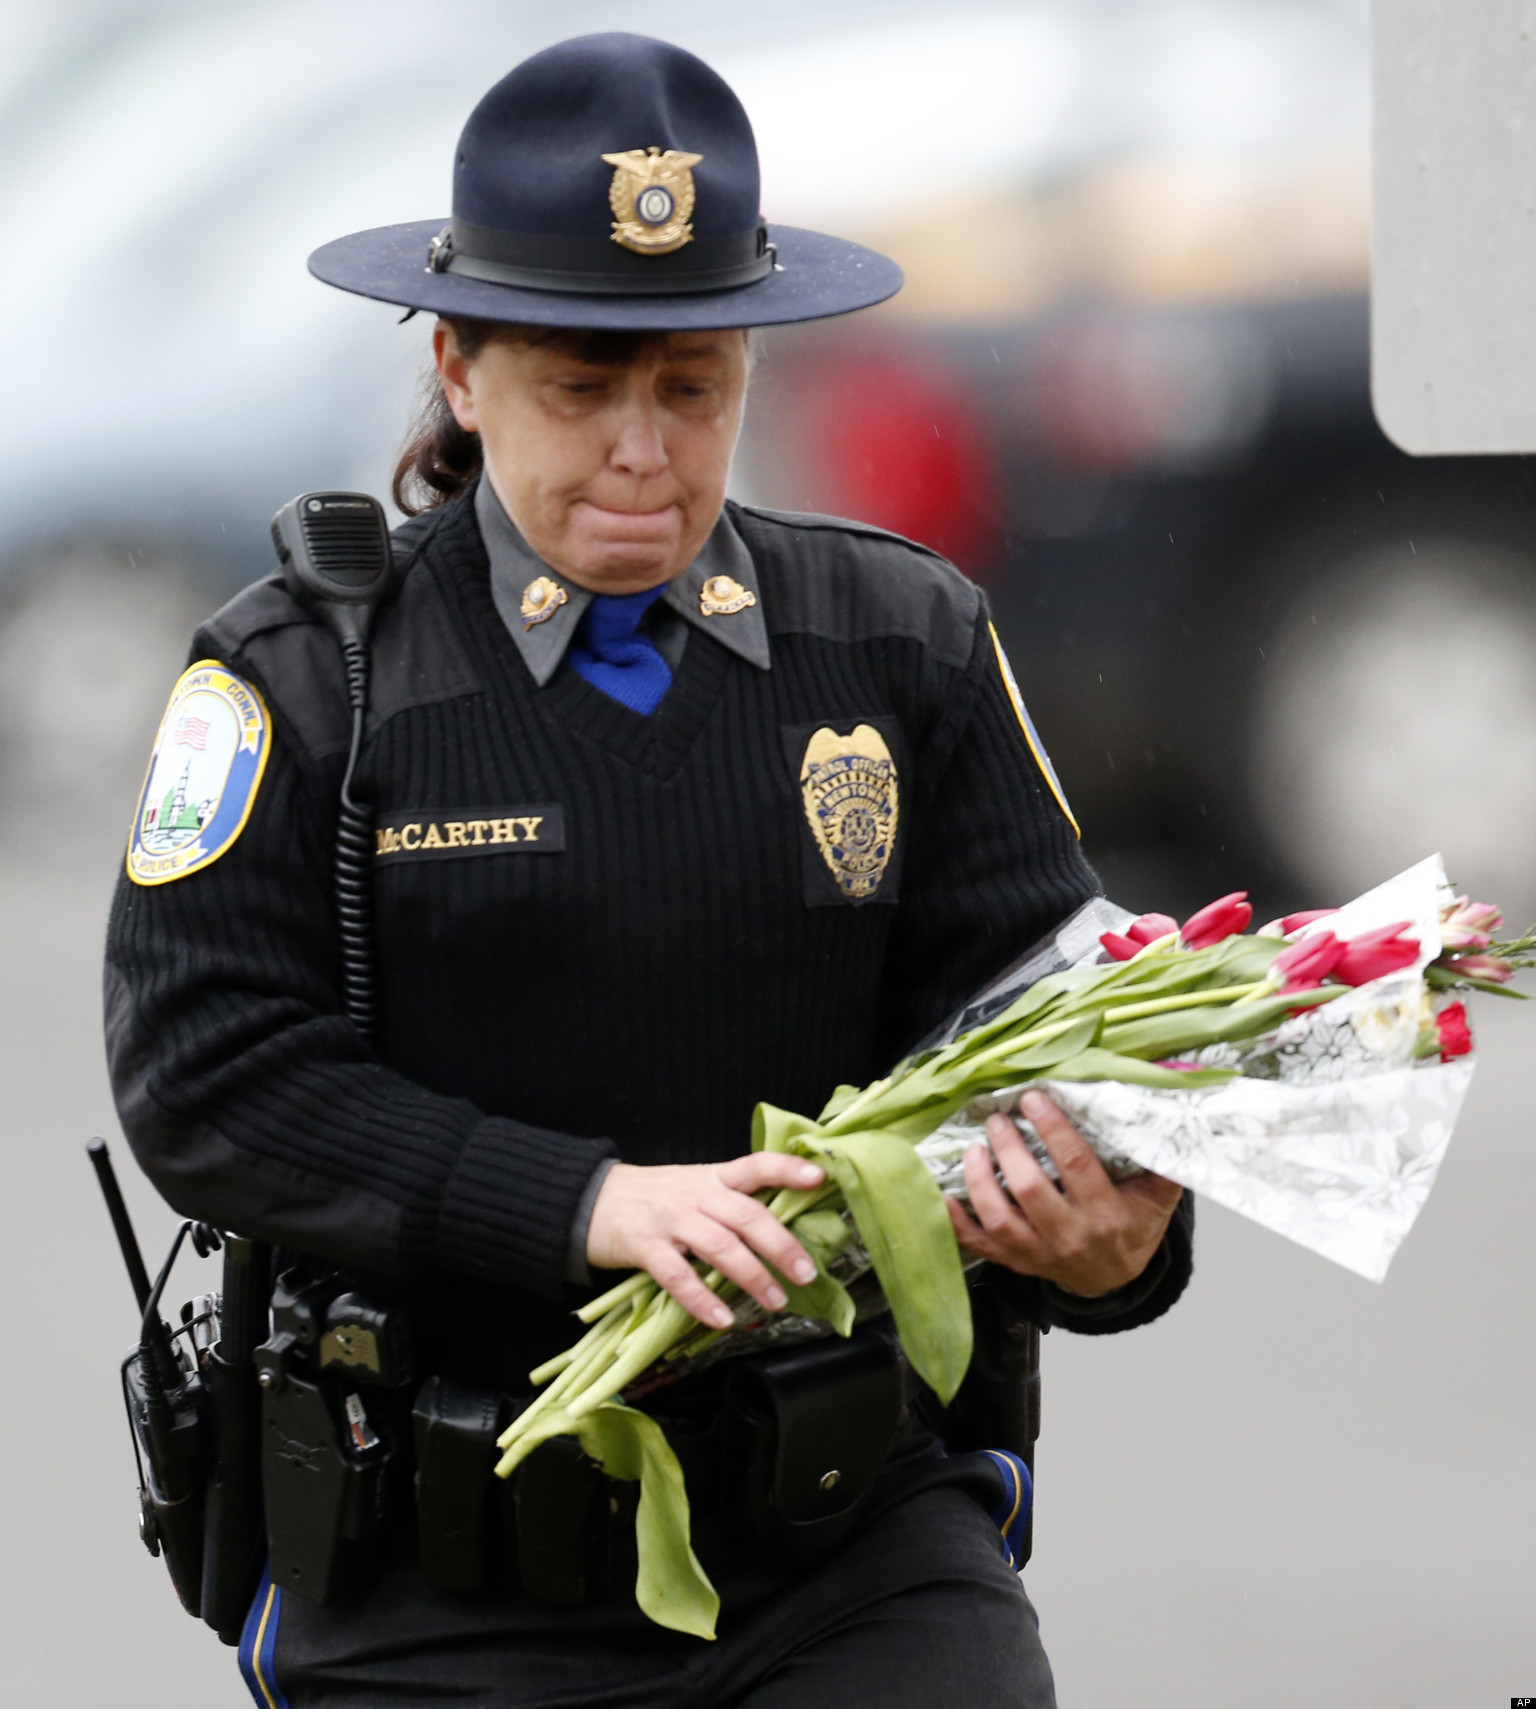 Scenes From Sandy Hook: Newtown Police Get Christmas Day Off, Thanks To